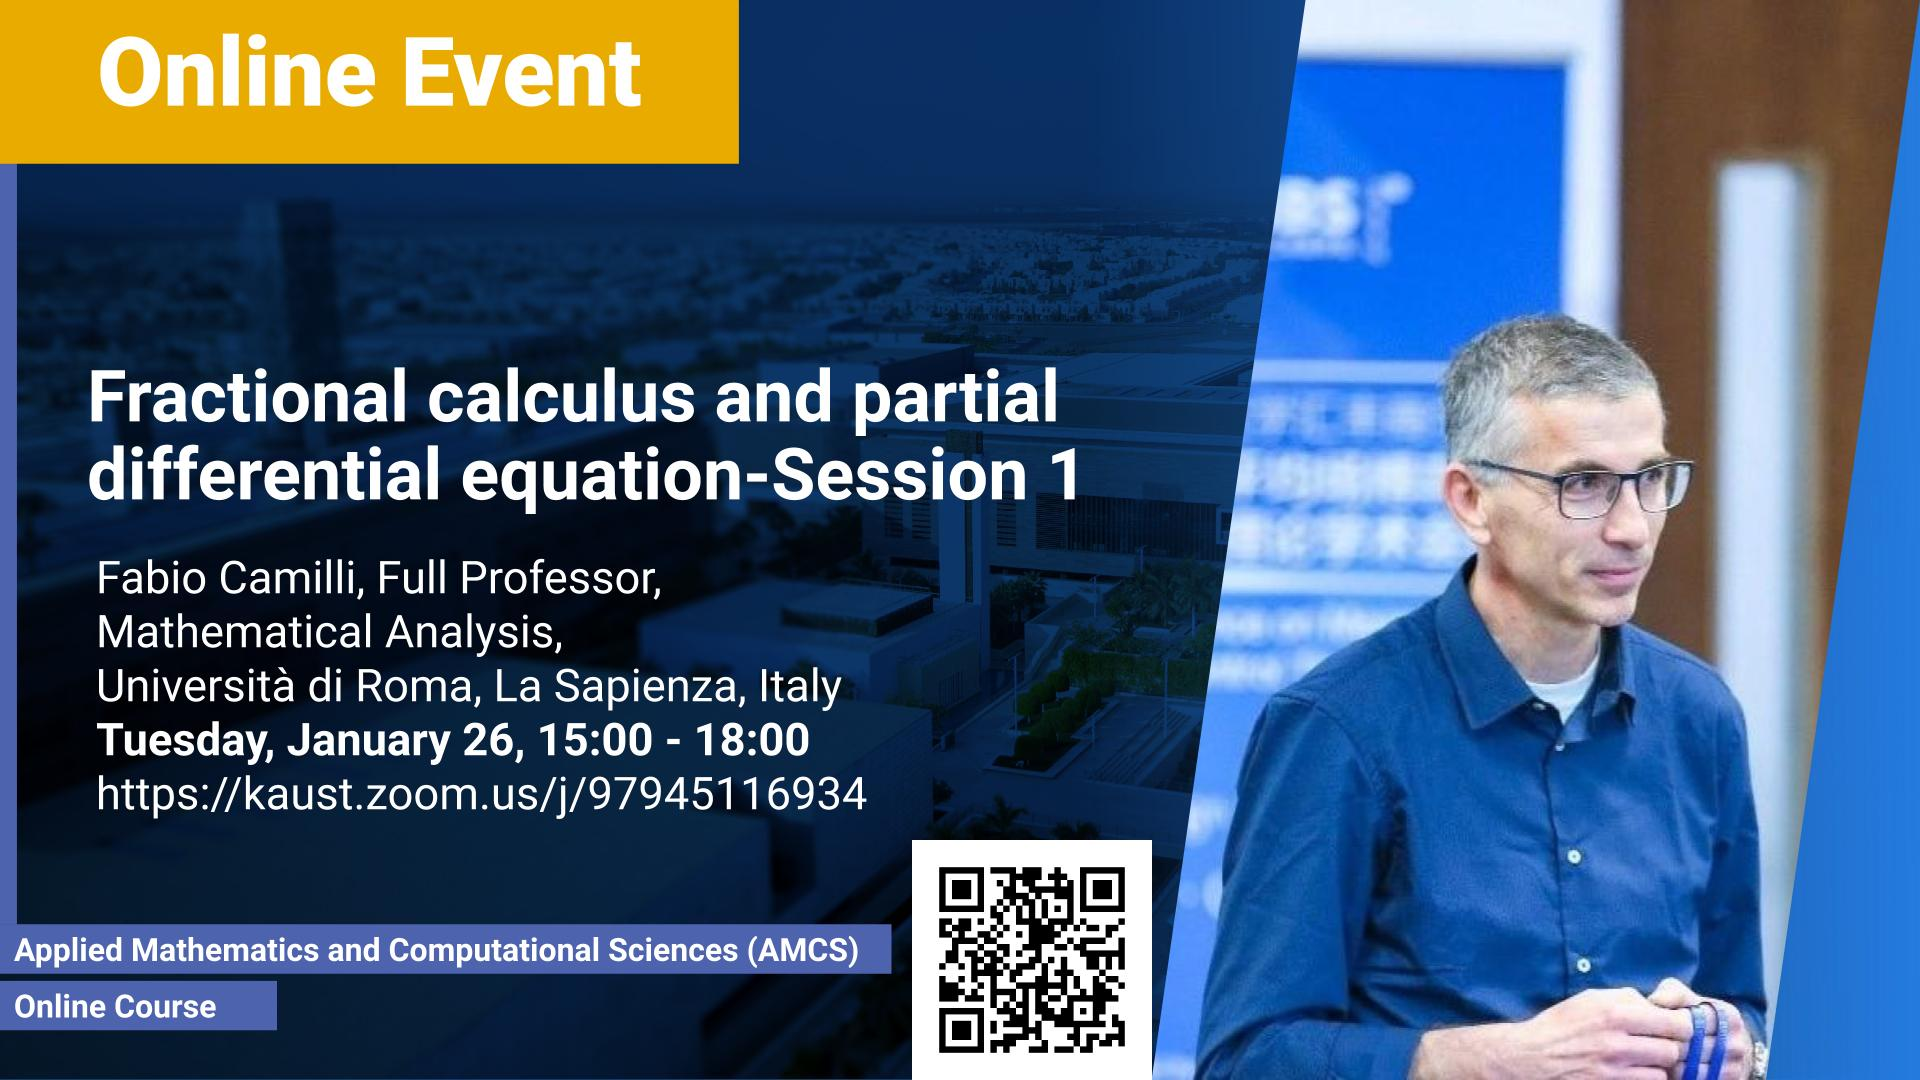 KAUST CEMSE AMCS Online Course Fabio Camilli Fractional calculus and partial differential equation Session 1